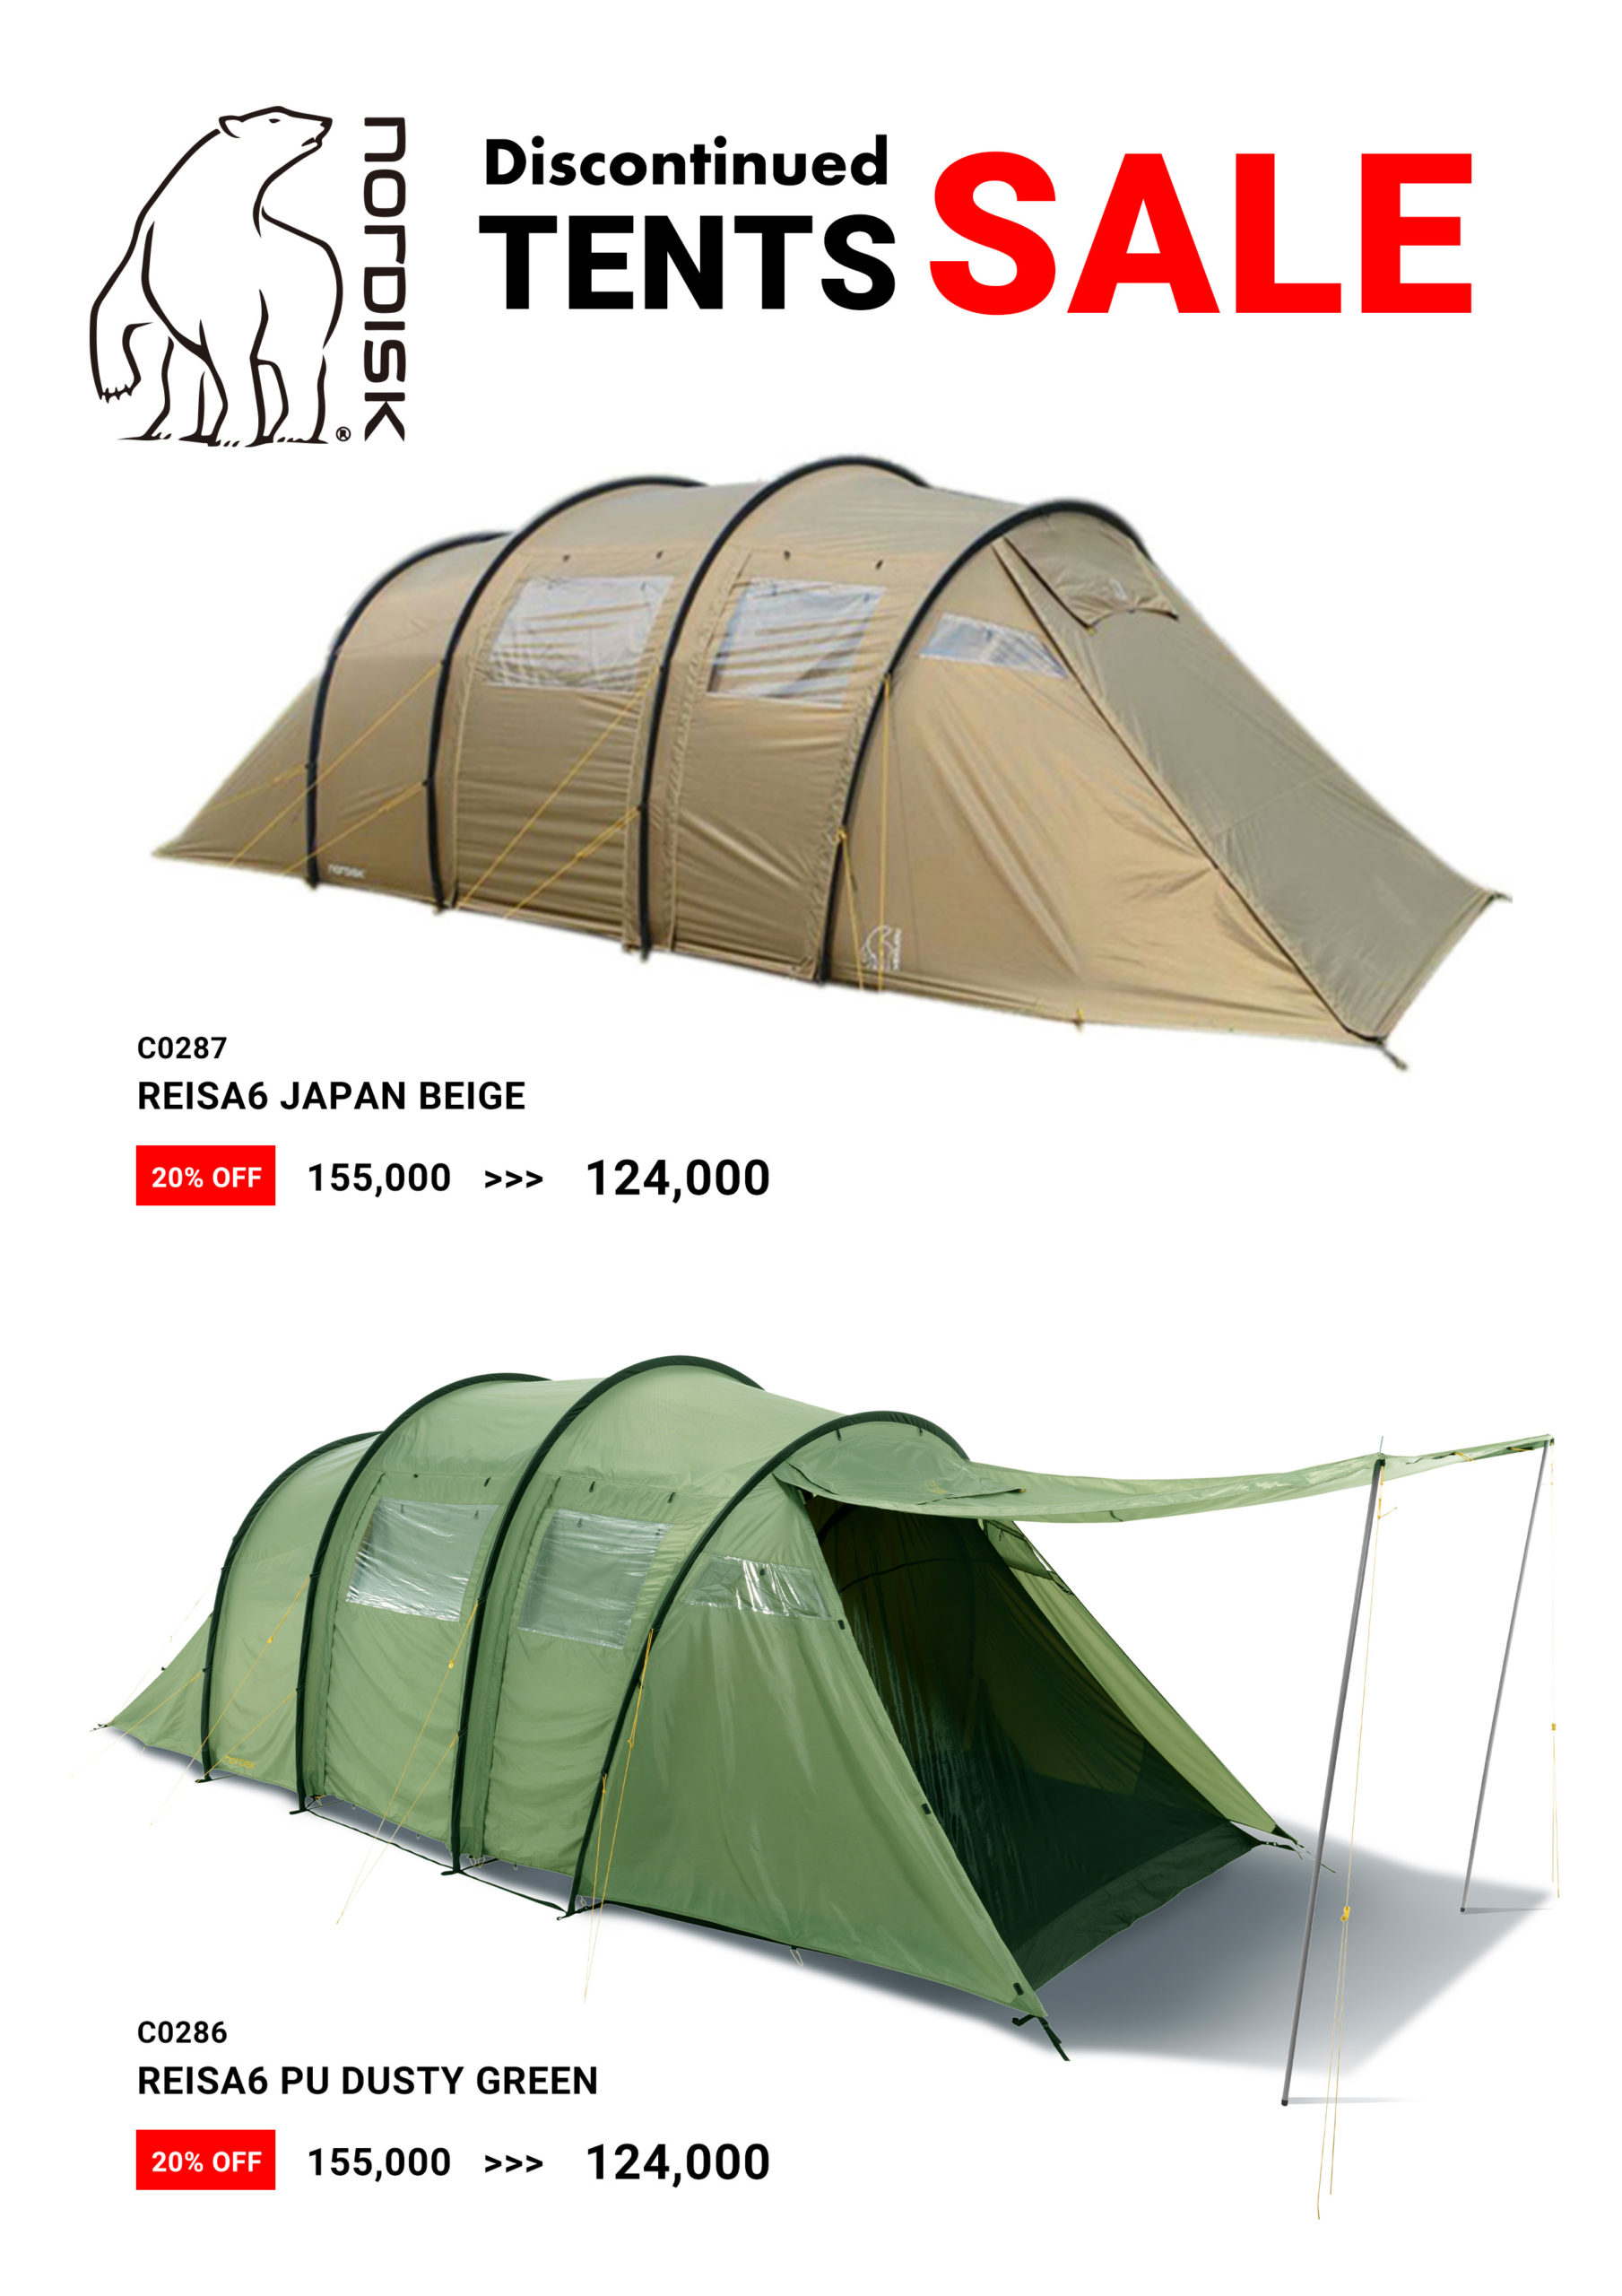 #152 – Nordisk Discontinued TENTS SALE-